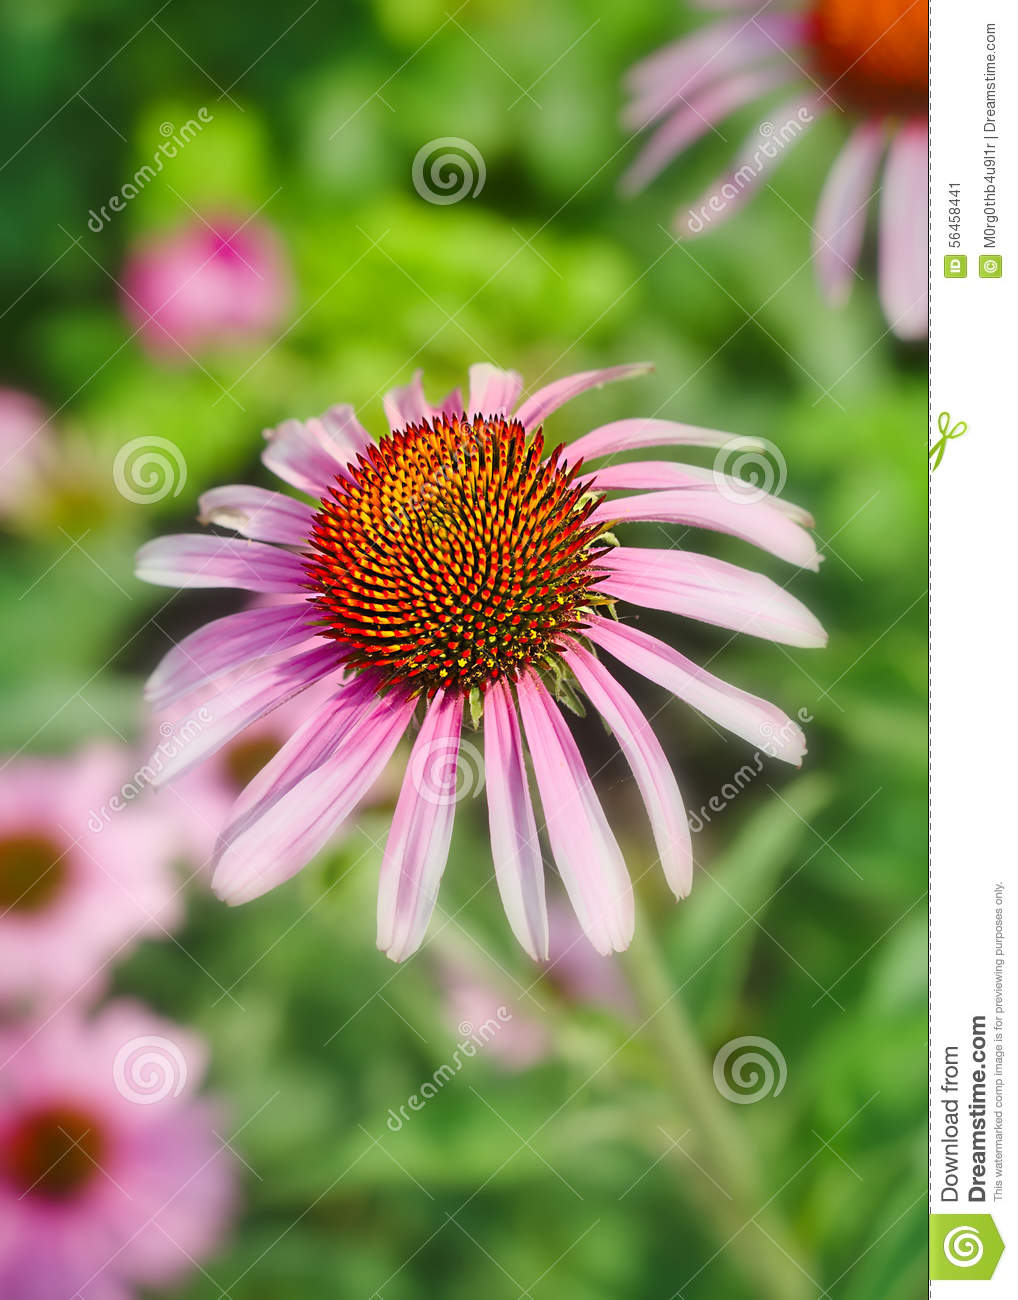 Flower With Pink Petals And Spiky Stamens Stock Photo.